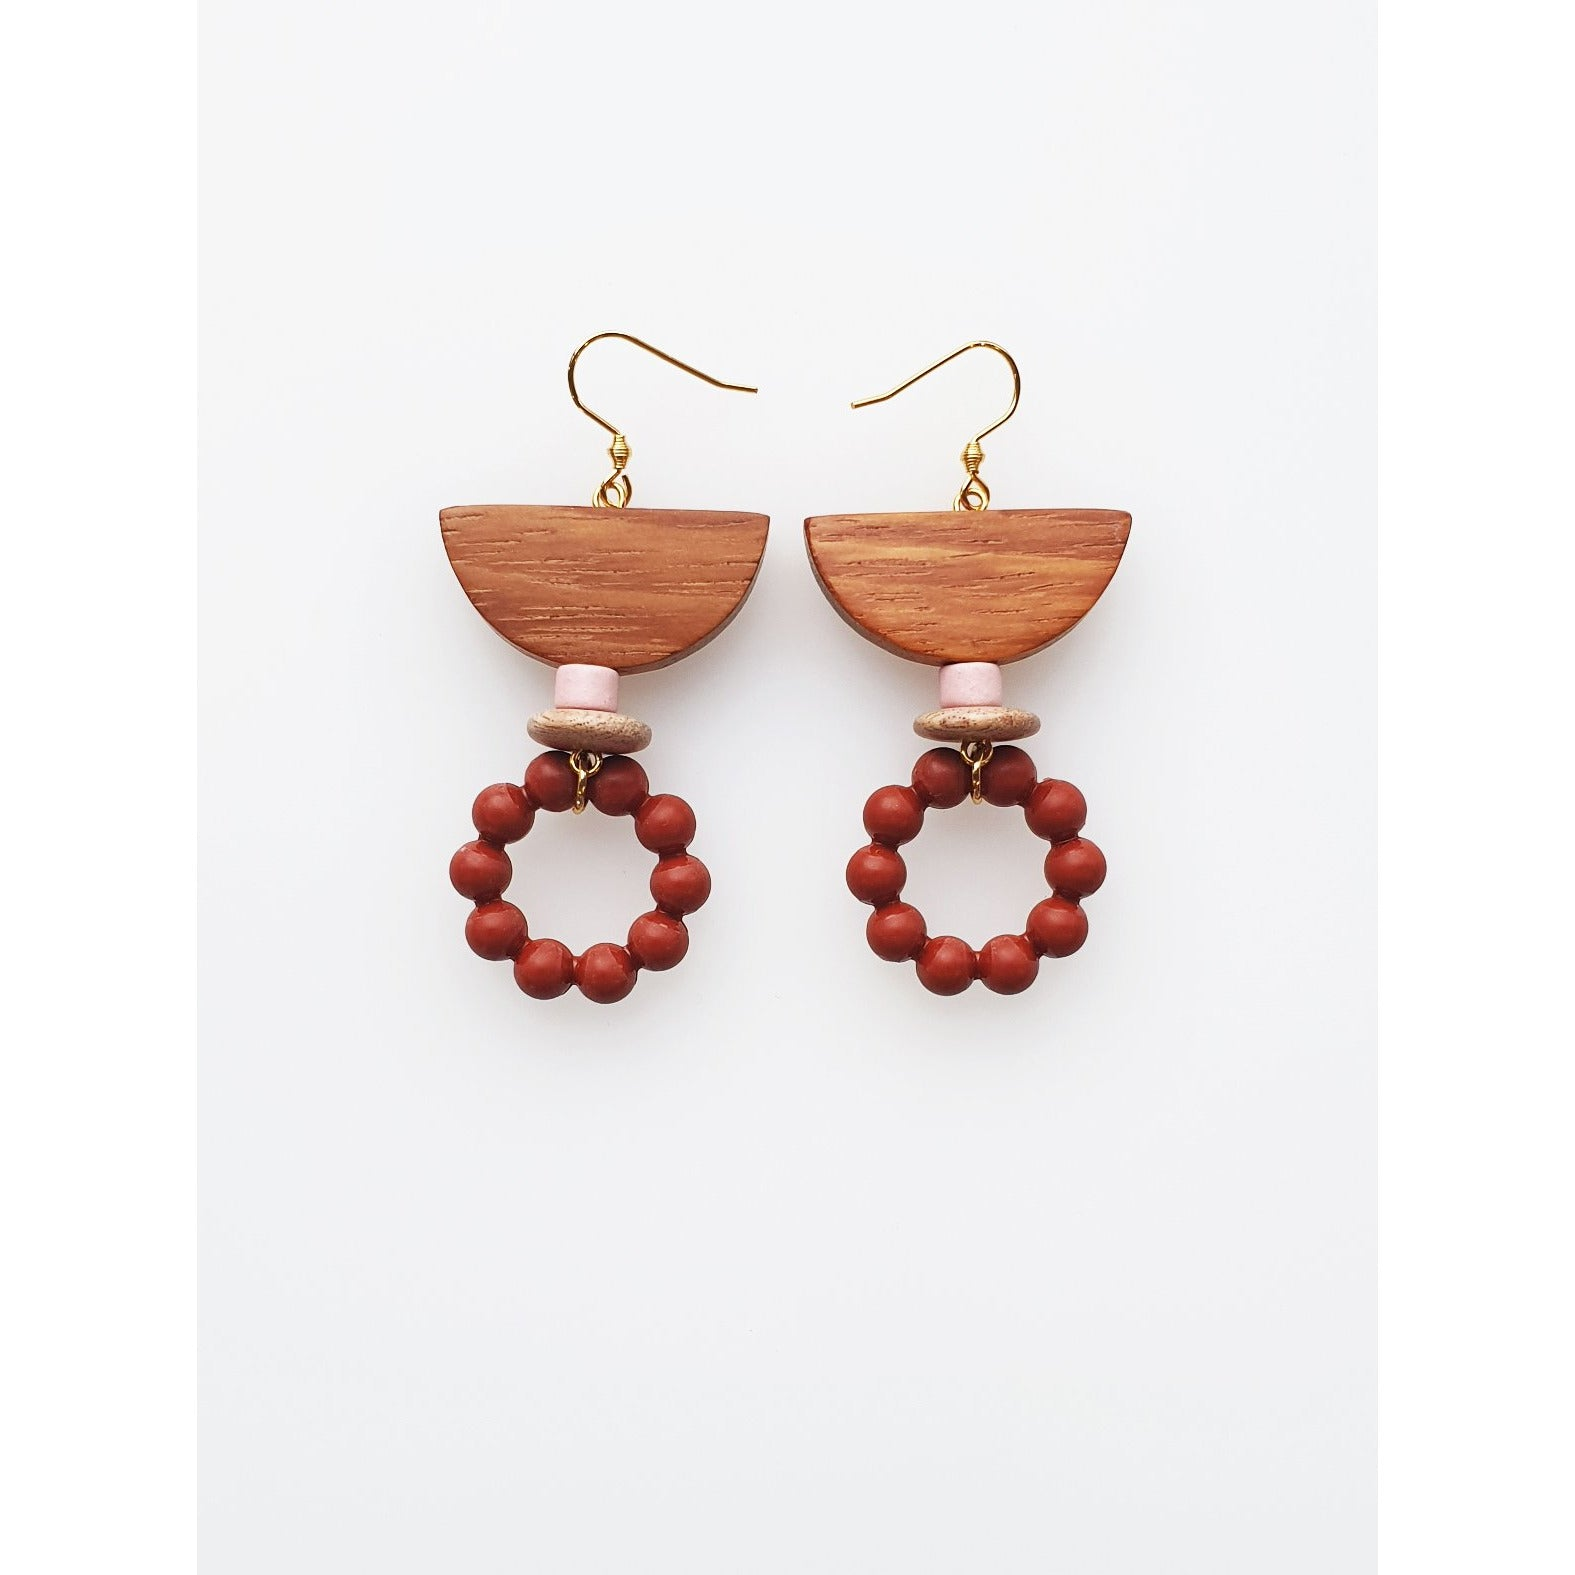 Middle Child Jewellery Garland Earrings in Red